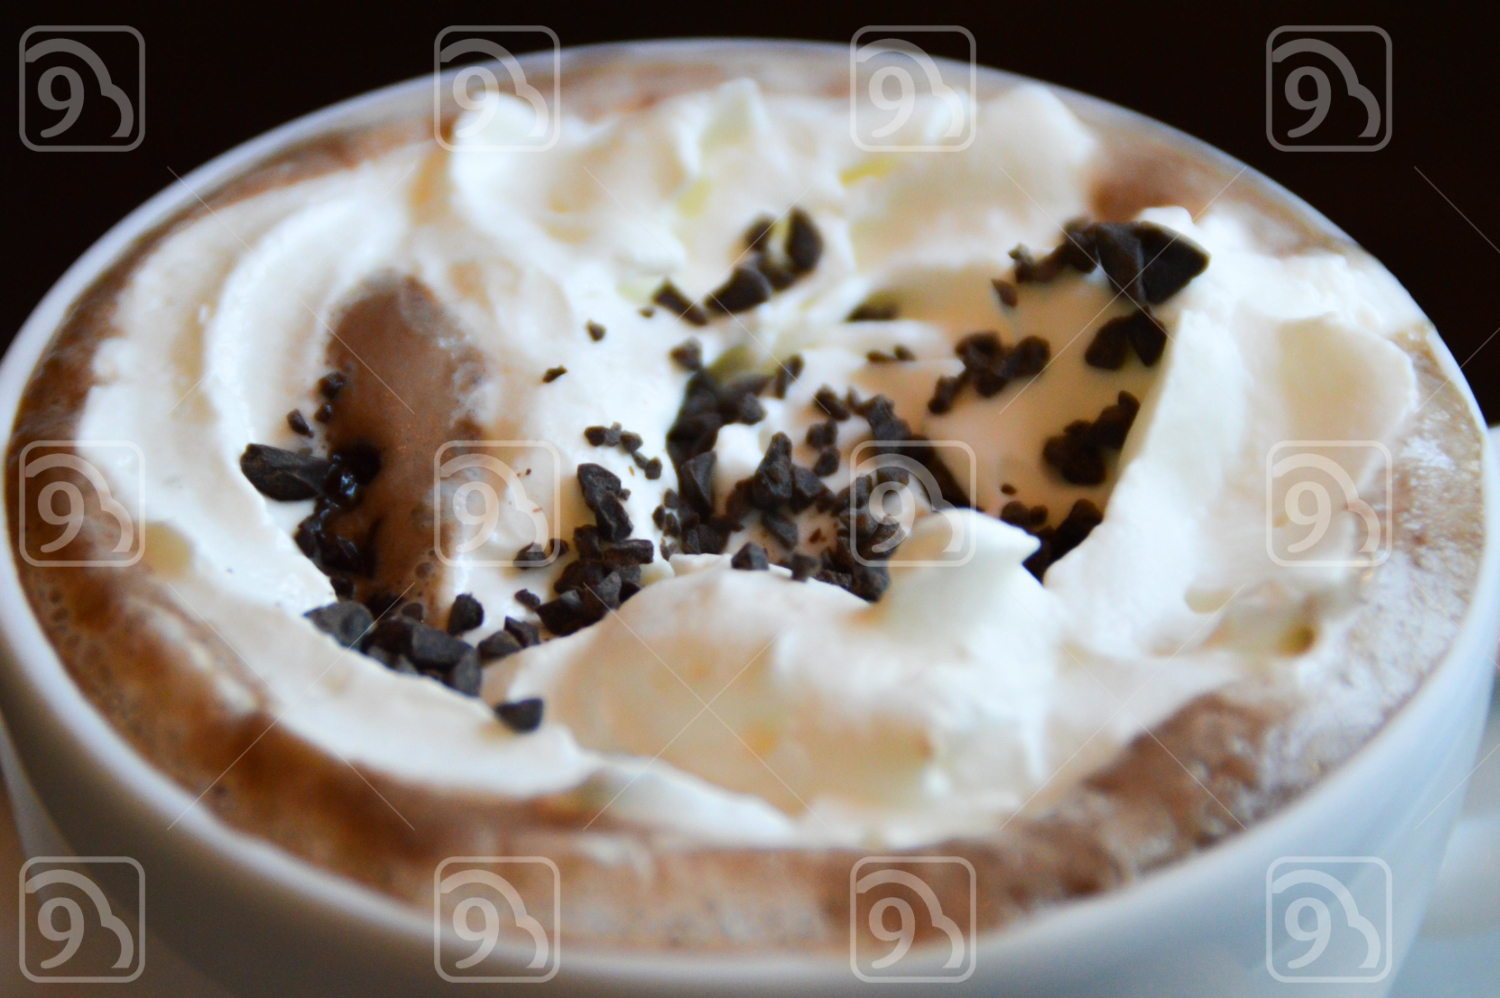 Hot Mocha with Choco Chips on the Whipped Cream